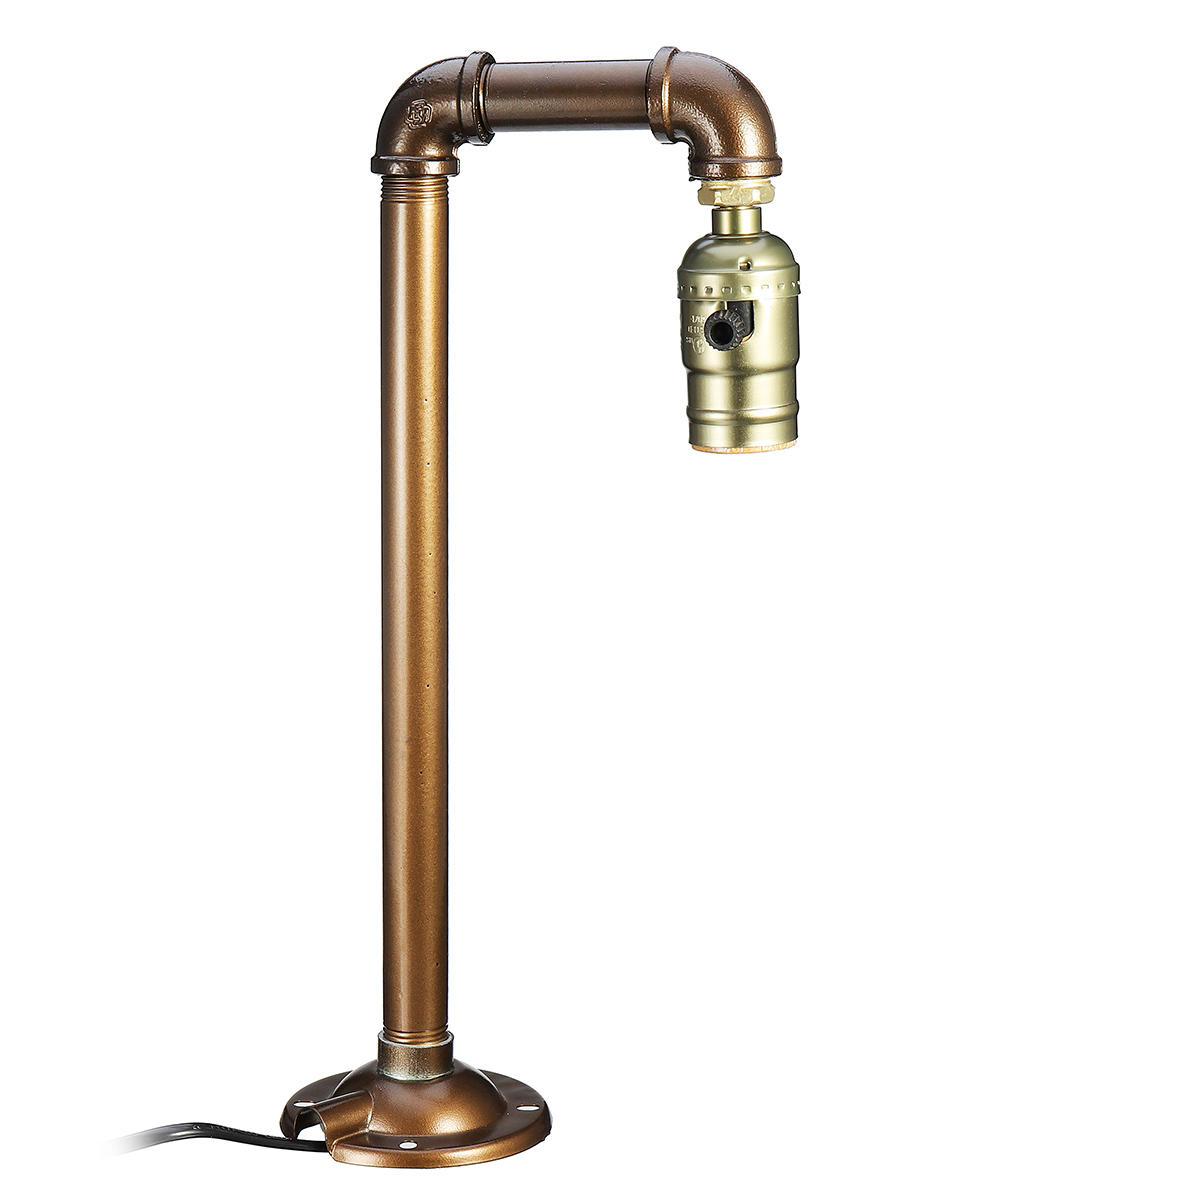 Industrial Water Pipe E27 Bulb Lamp Light Desk Table Lamp Home Bedroom Fixture Decor